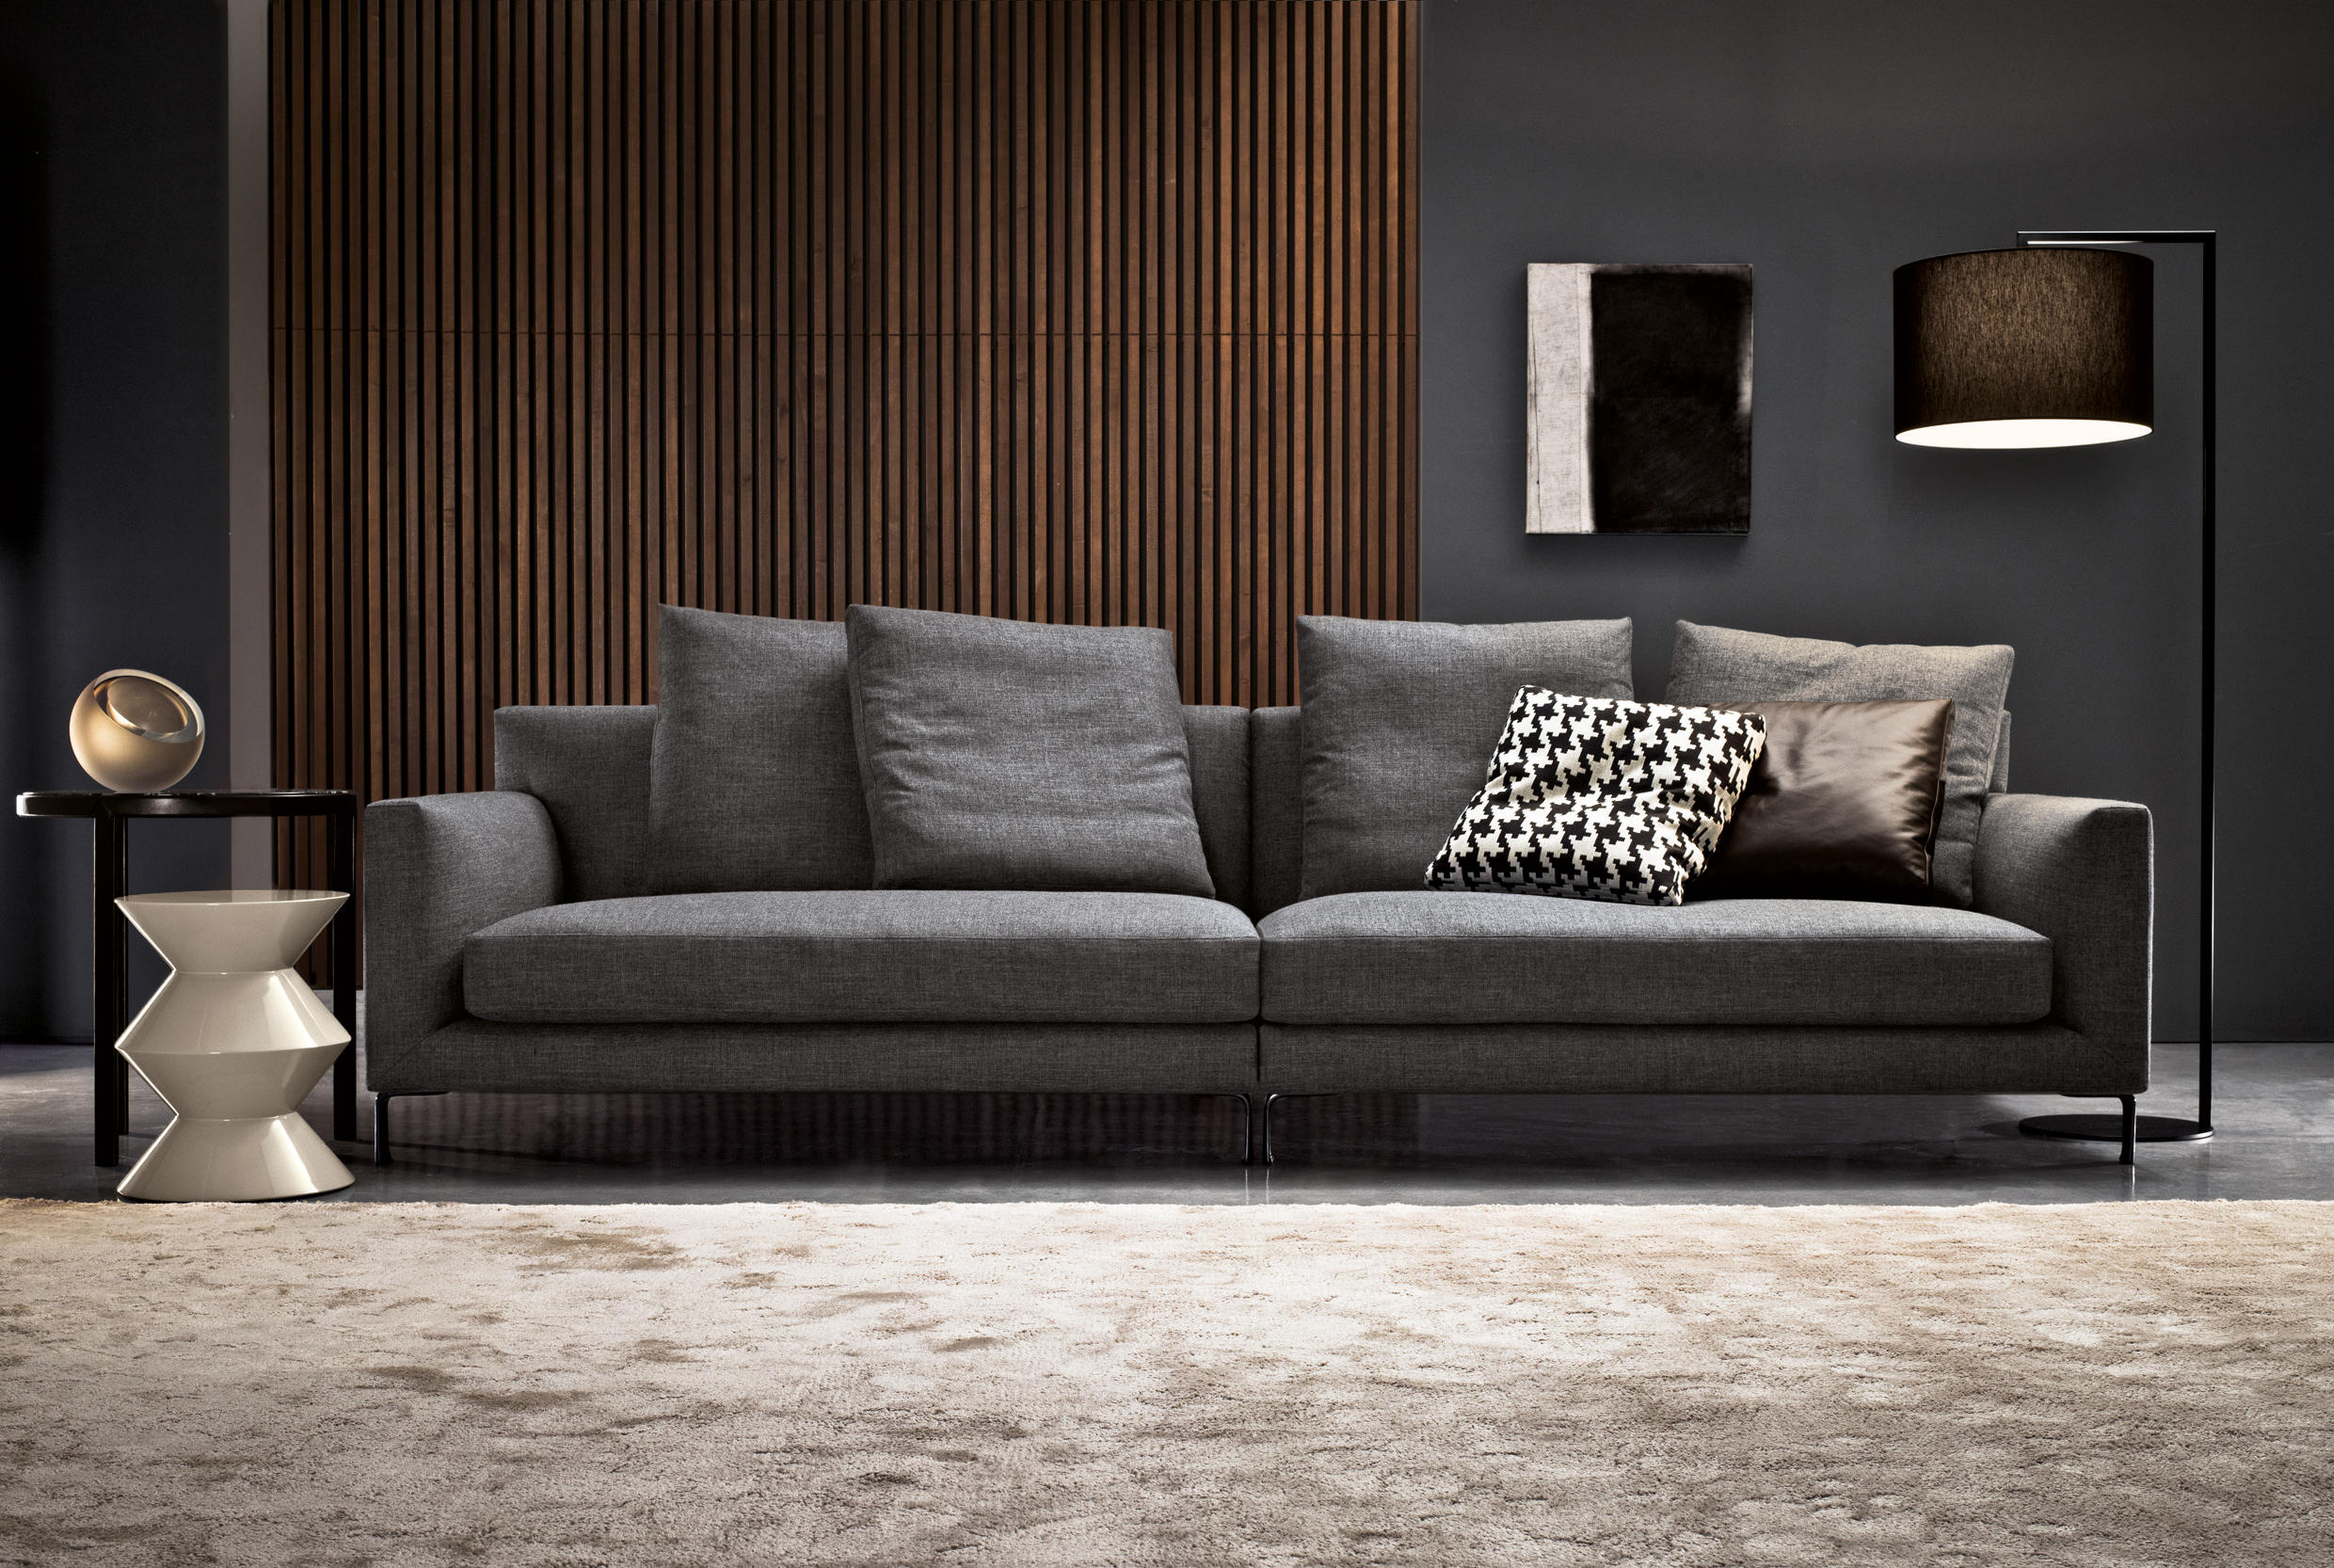 allen sofas from minotti architonic. Black Bedroom Furniture Sets. Home Design Ideas